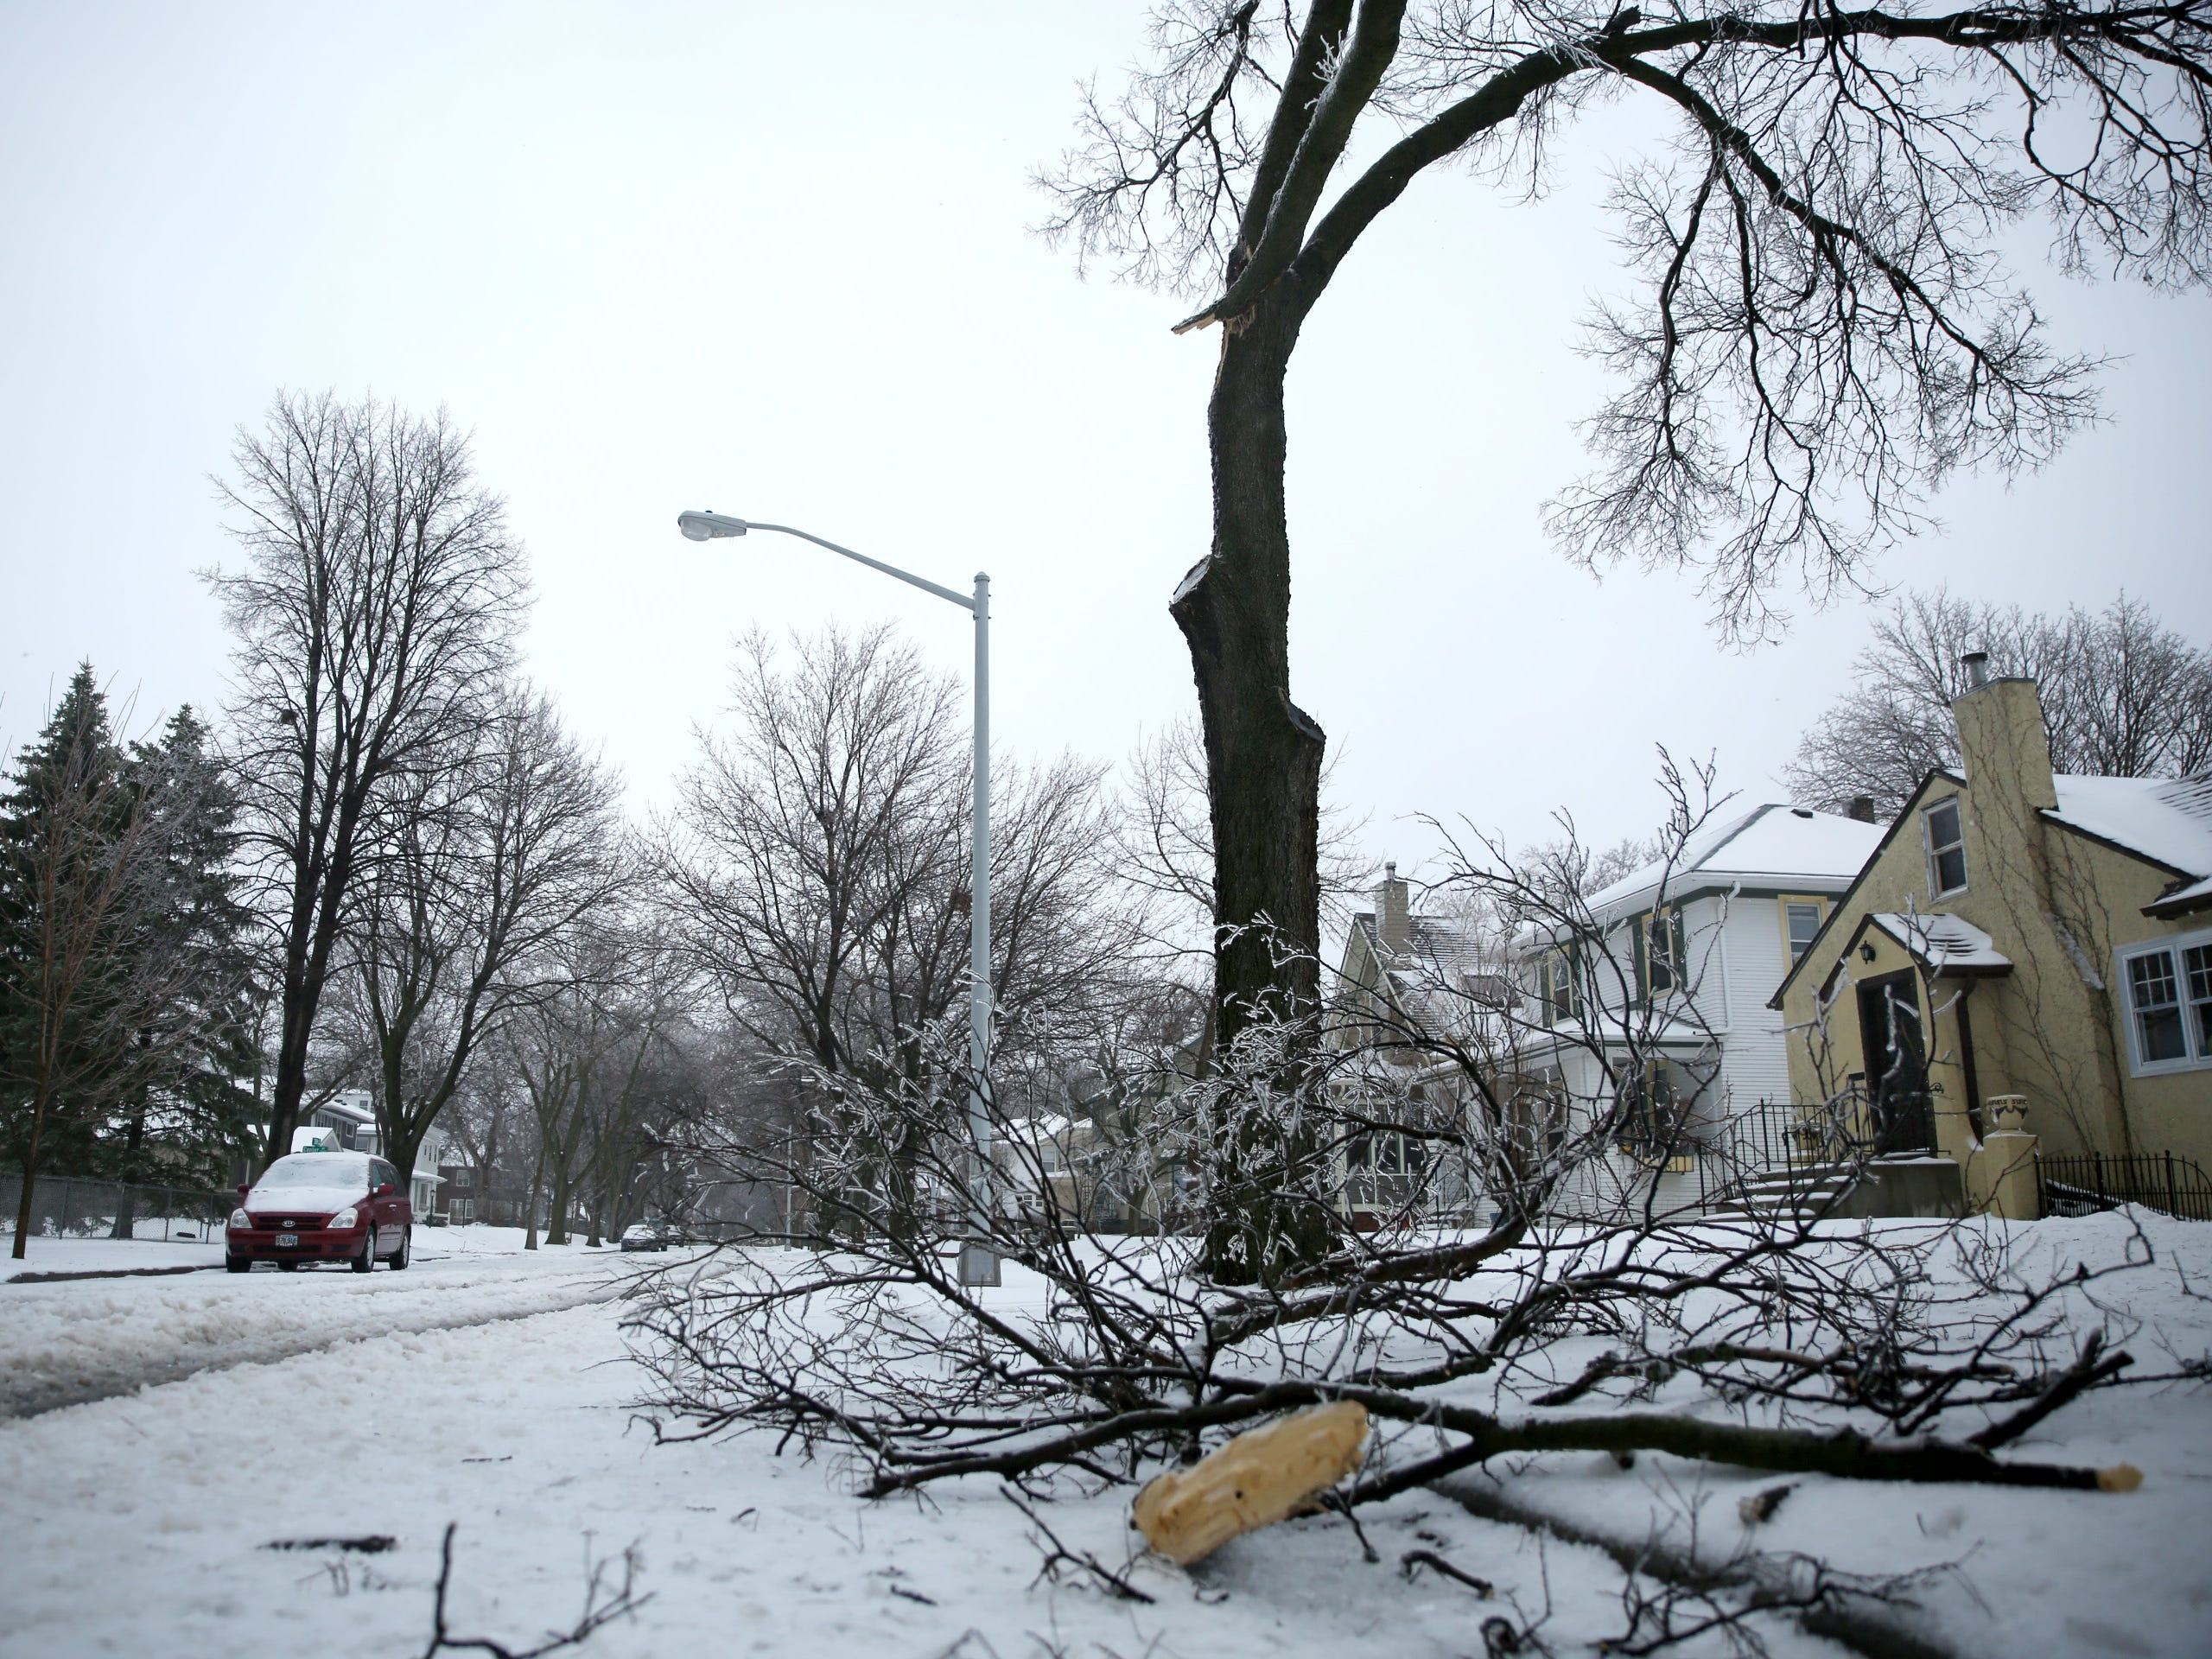 Multiple tree limbs, branches and stick lay scattered on residential streets in Sioux Falls on Thursday, April 11. The results are a combination of ice weighing down branches and strong winds during the spring blizzard.